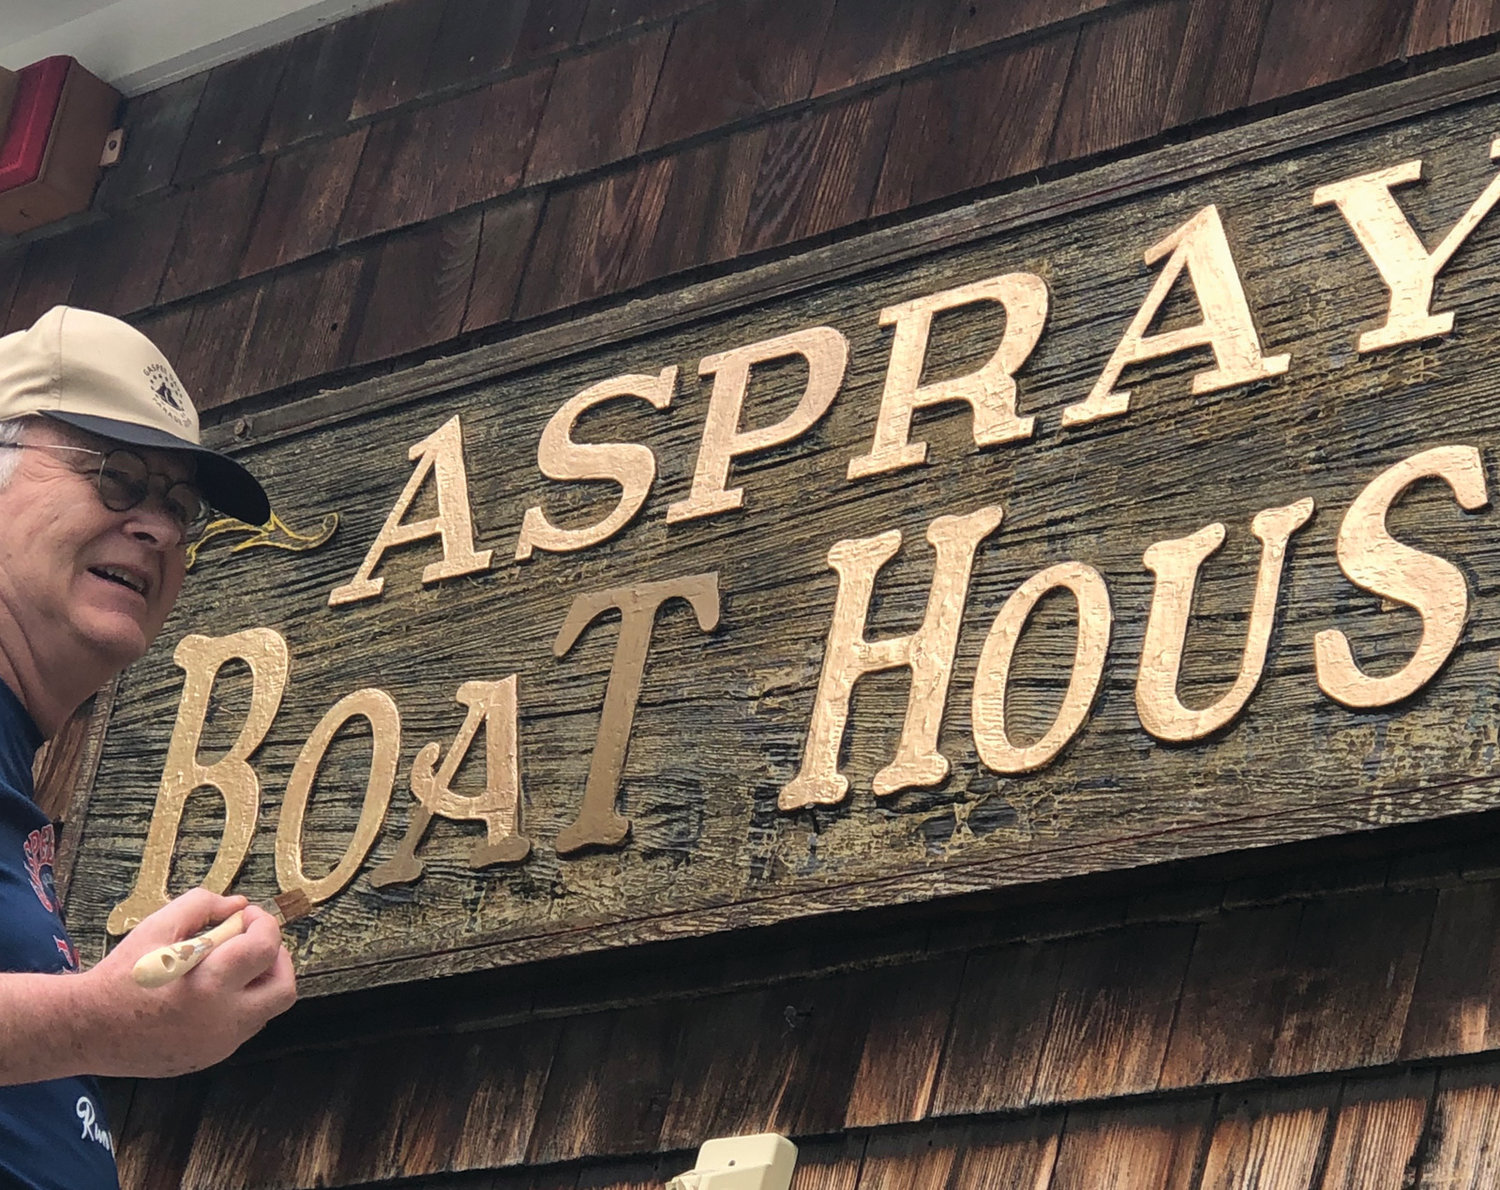 A pandemic couldn't stop John Concannon, former president of the Gaspee Days Committee, from his annual Memorial Day ritual of brightening up the Aspray Boat House sign. As Erin Flynn, who sent us this picture, pointed out, the Gaspee Days Committee is staying busy even though its celebrations planned for this year had to be canceled.